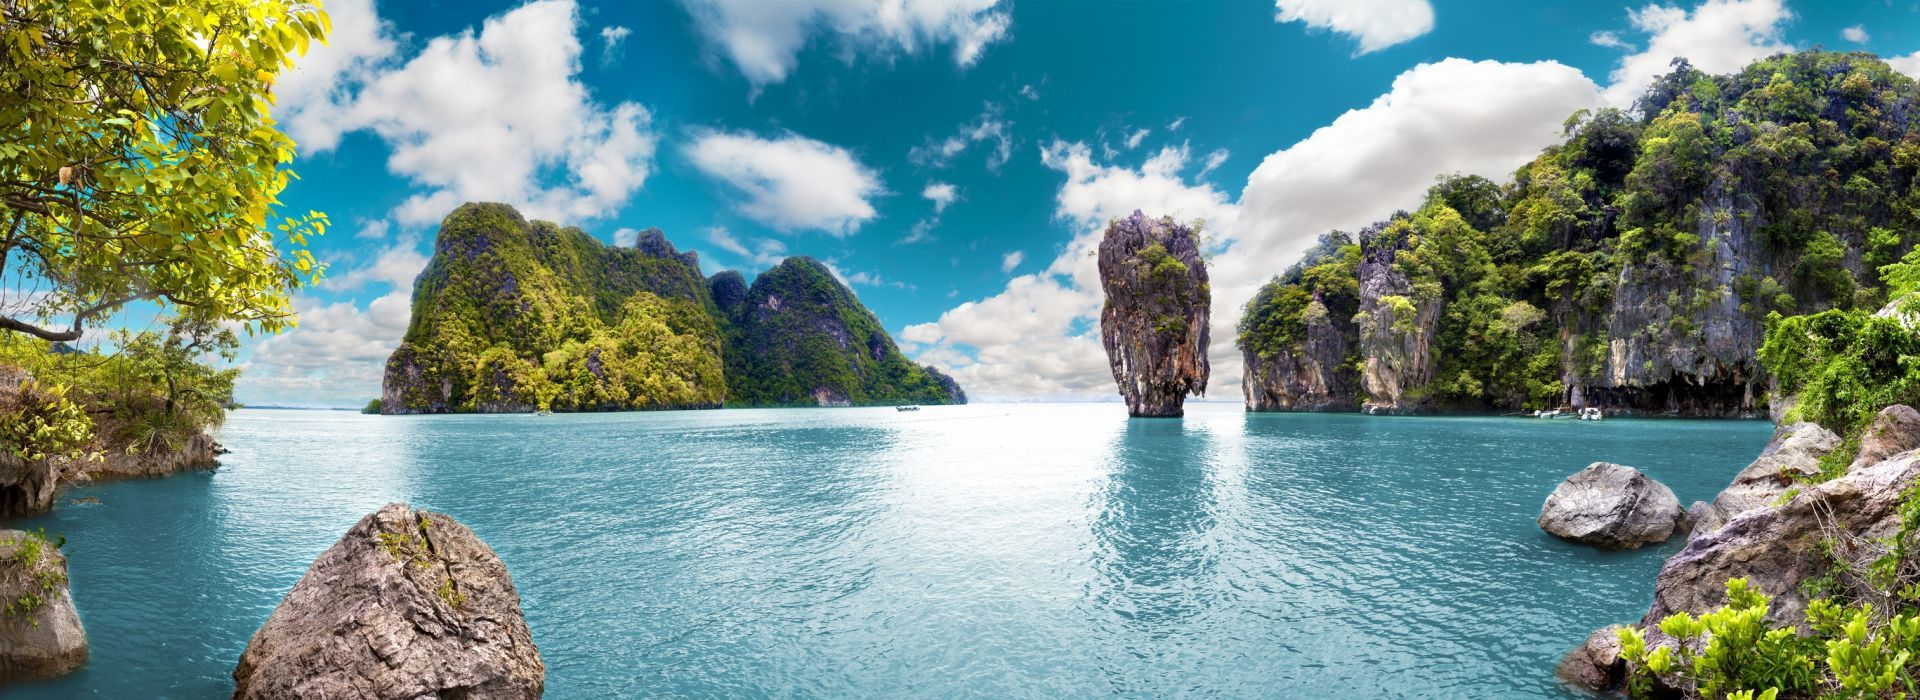 Thailand Tours and Trips to Thailand